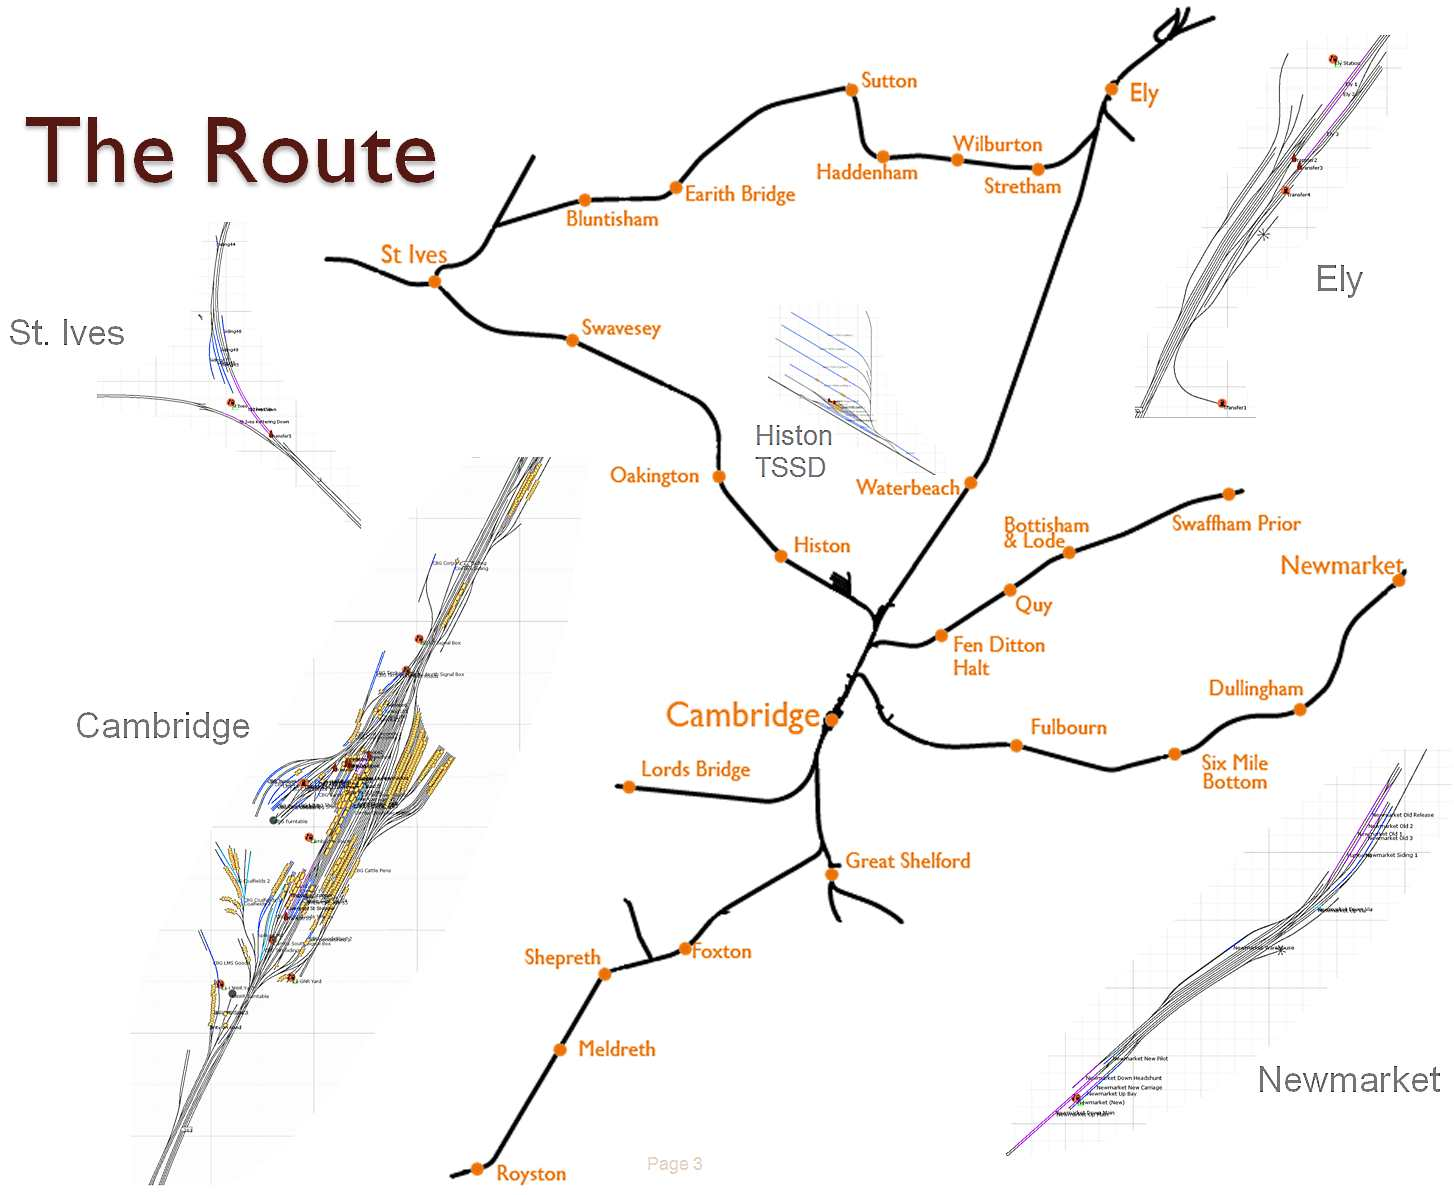 A plan showing the major lines of the Cambridge route and trackplans of major stations.